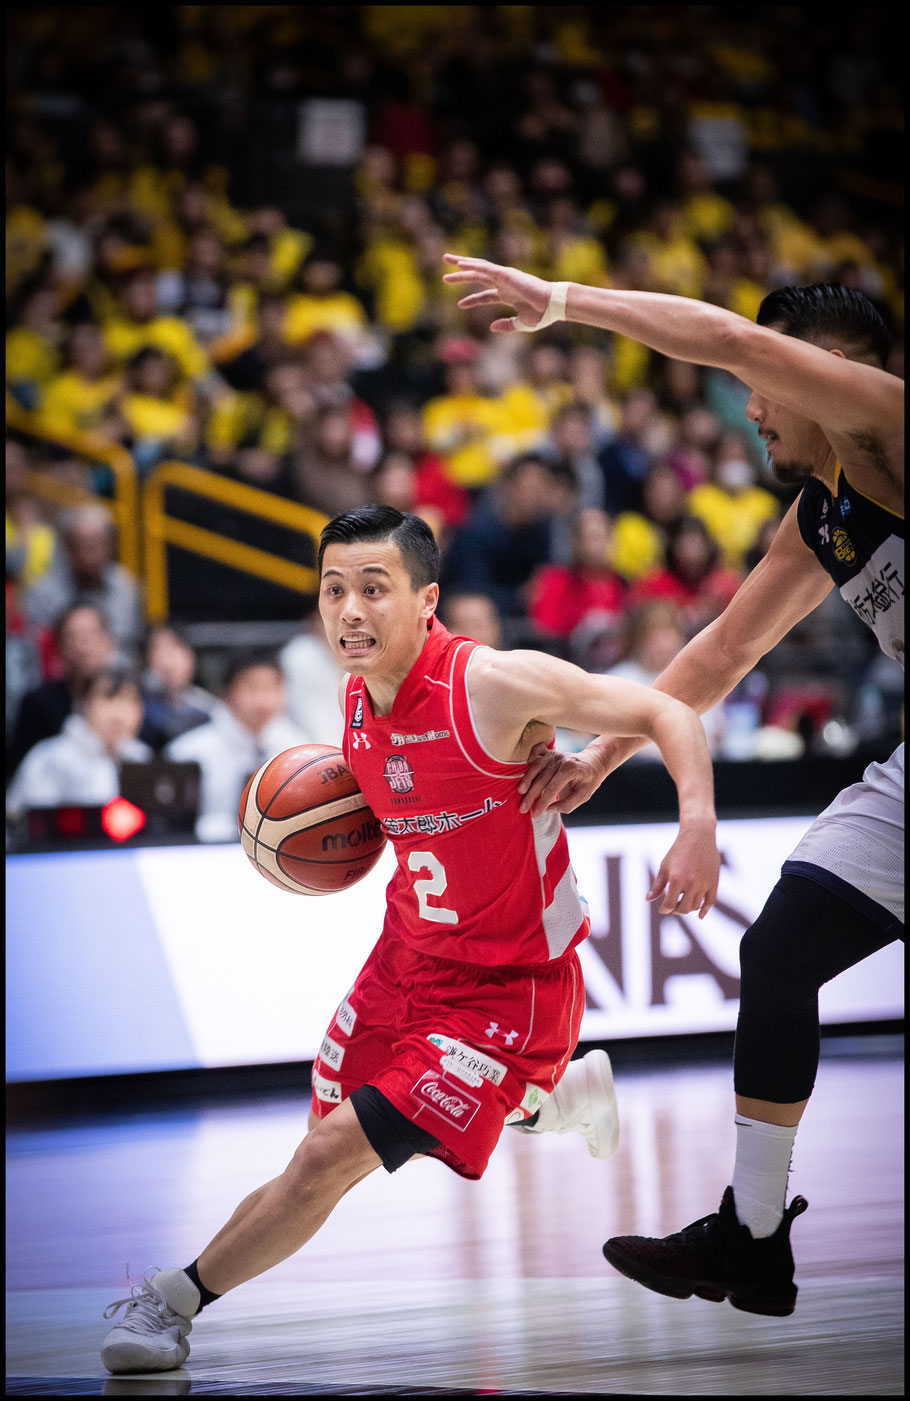 Yuki Togashi's 3-pointer in overtime won the game – Sachiyo Karamatsu, Inside Sport: Japan, Jan 13th, 2019